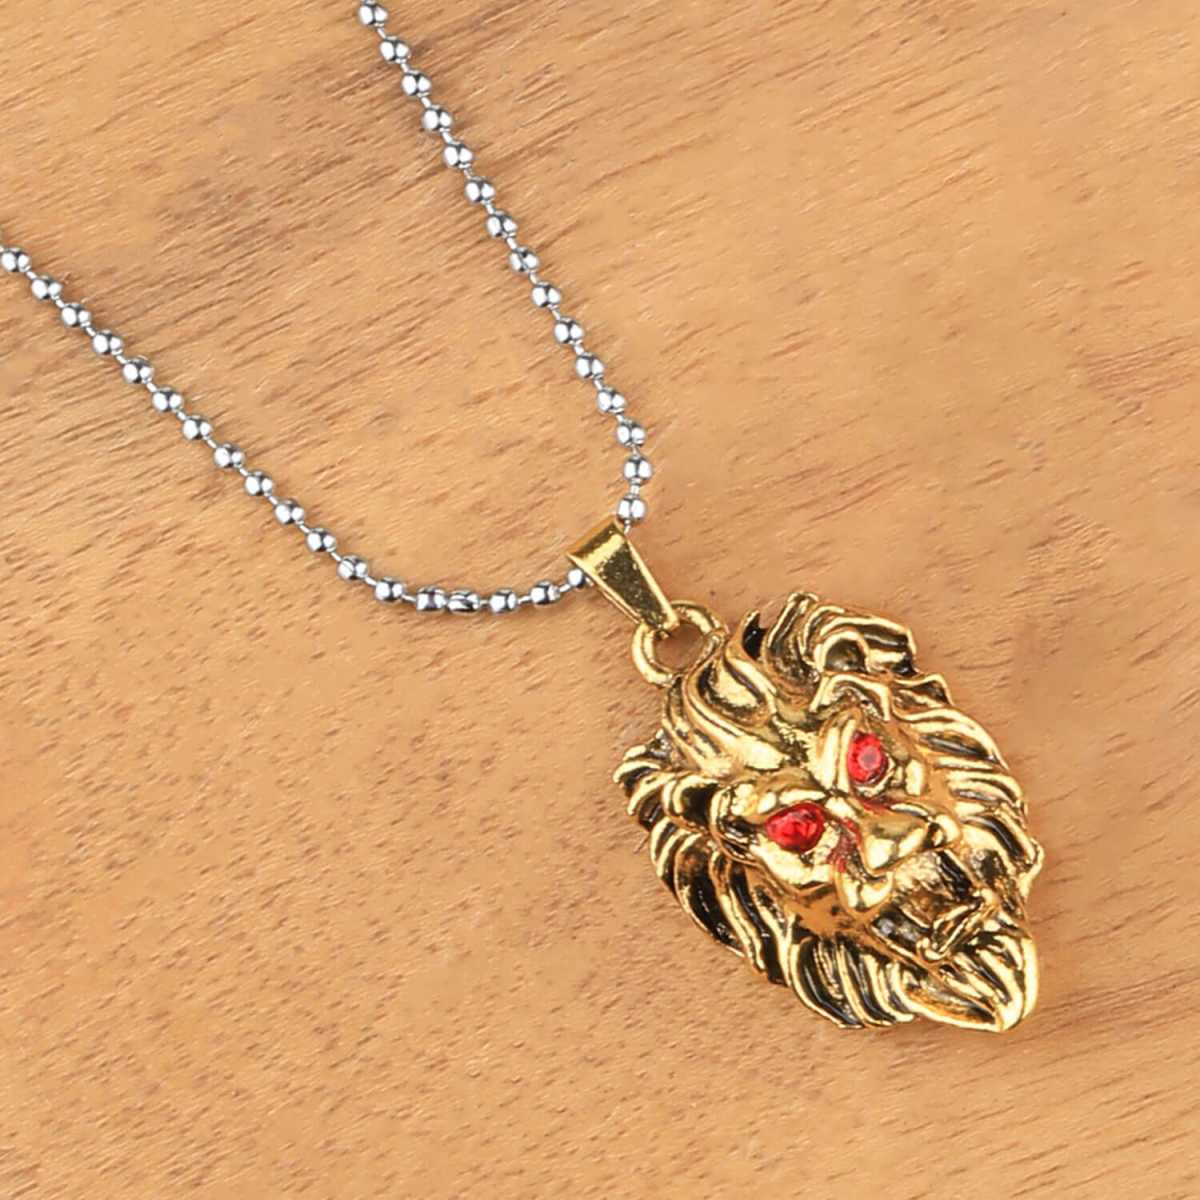 SILVERSHINE SilverPlated Attractive Chain With Lion Design Golden pendant With Diamond For Man Boy